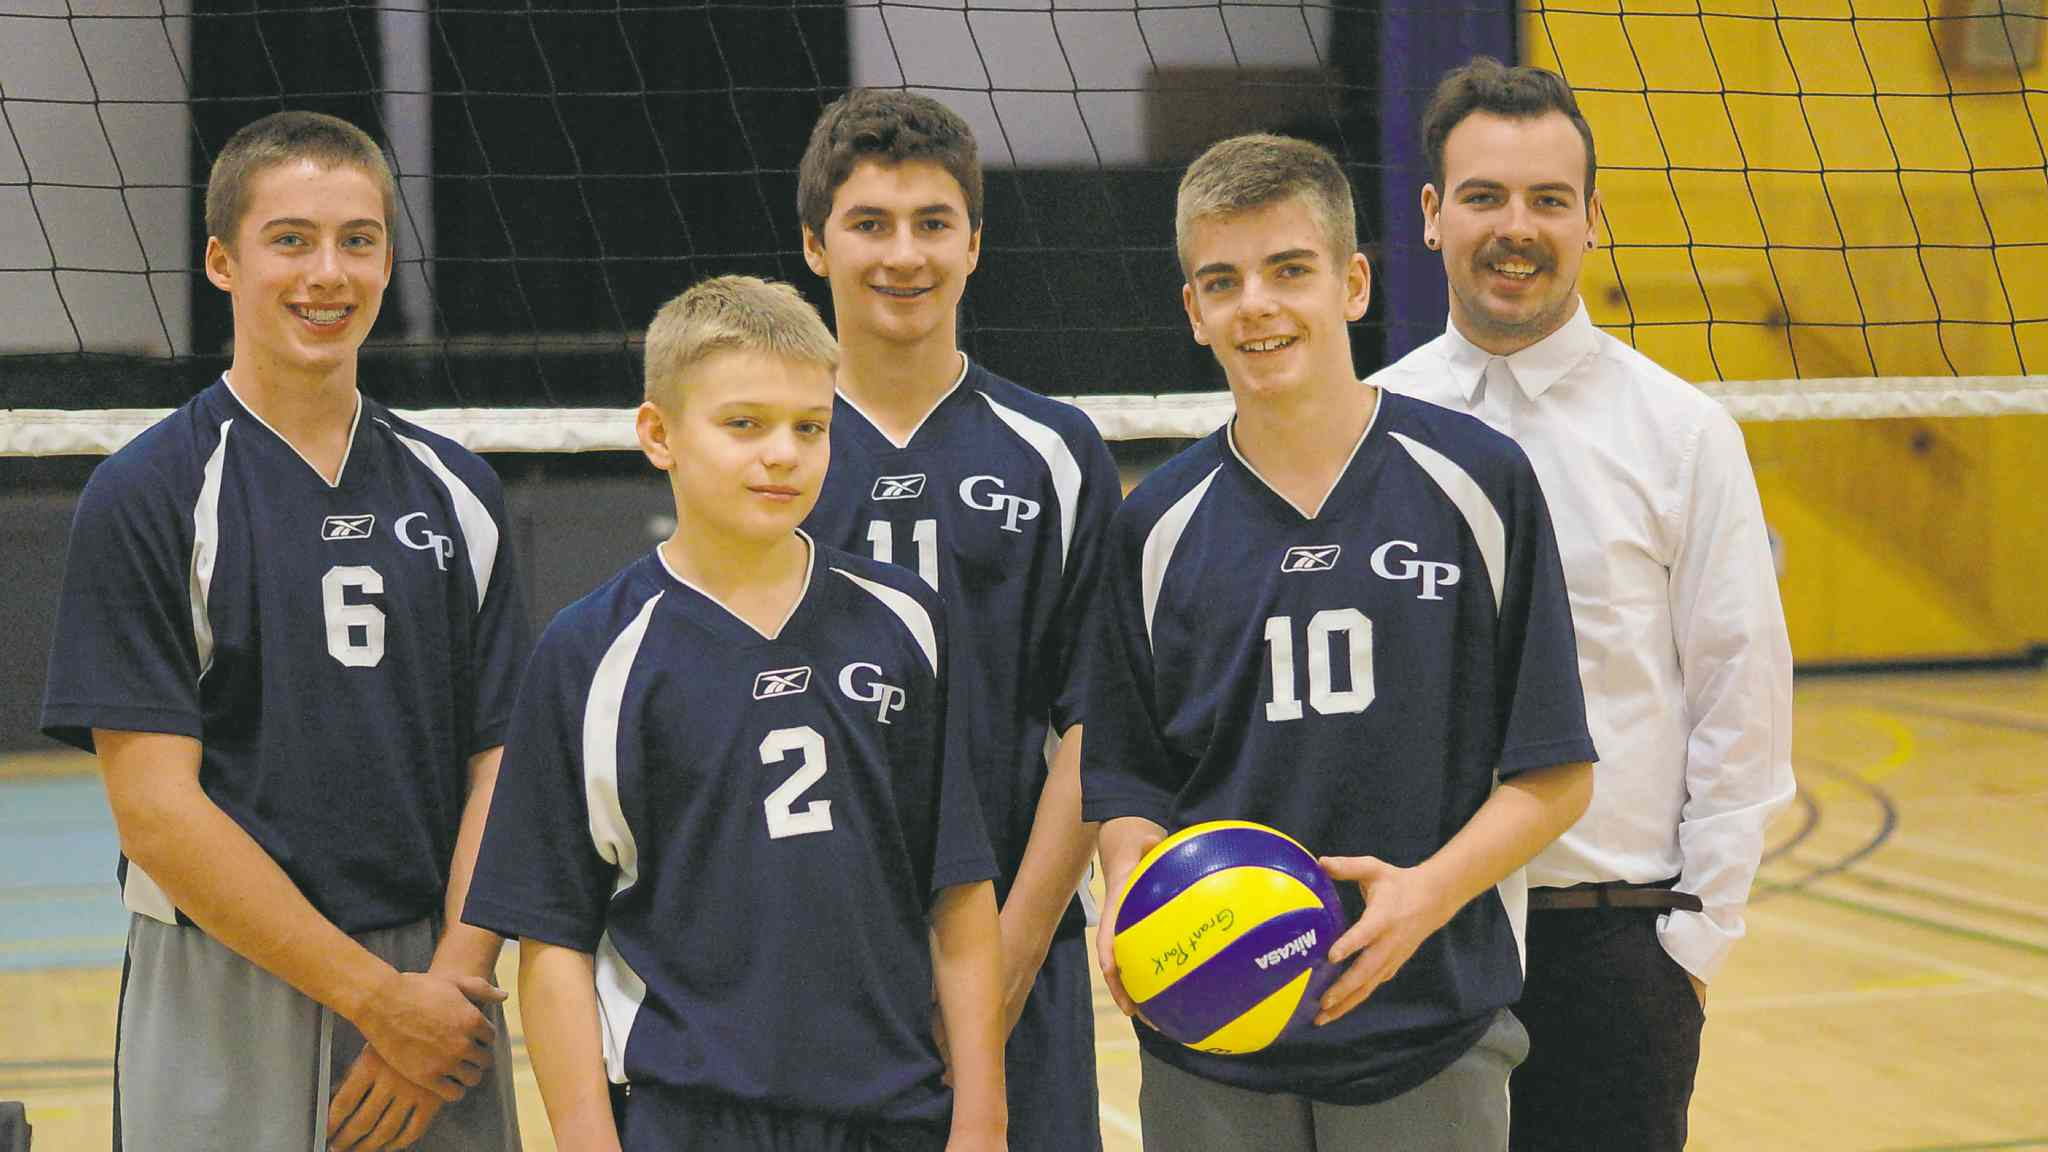 Nov. 26, 2014 - The Grade 9 boys' volleyball team at Grant Park are going to provincials next weekend. From left to right: Brent Broughton, Jake Weir-Cooper, Nick Cicek, Ben Van Bastelaere and coach Tanner Owens.. (DANIELLE DA SILVA/CANSTAR/SOUWESTER)